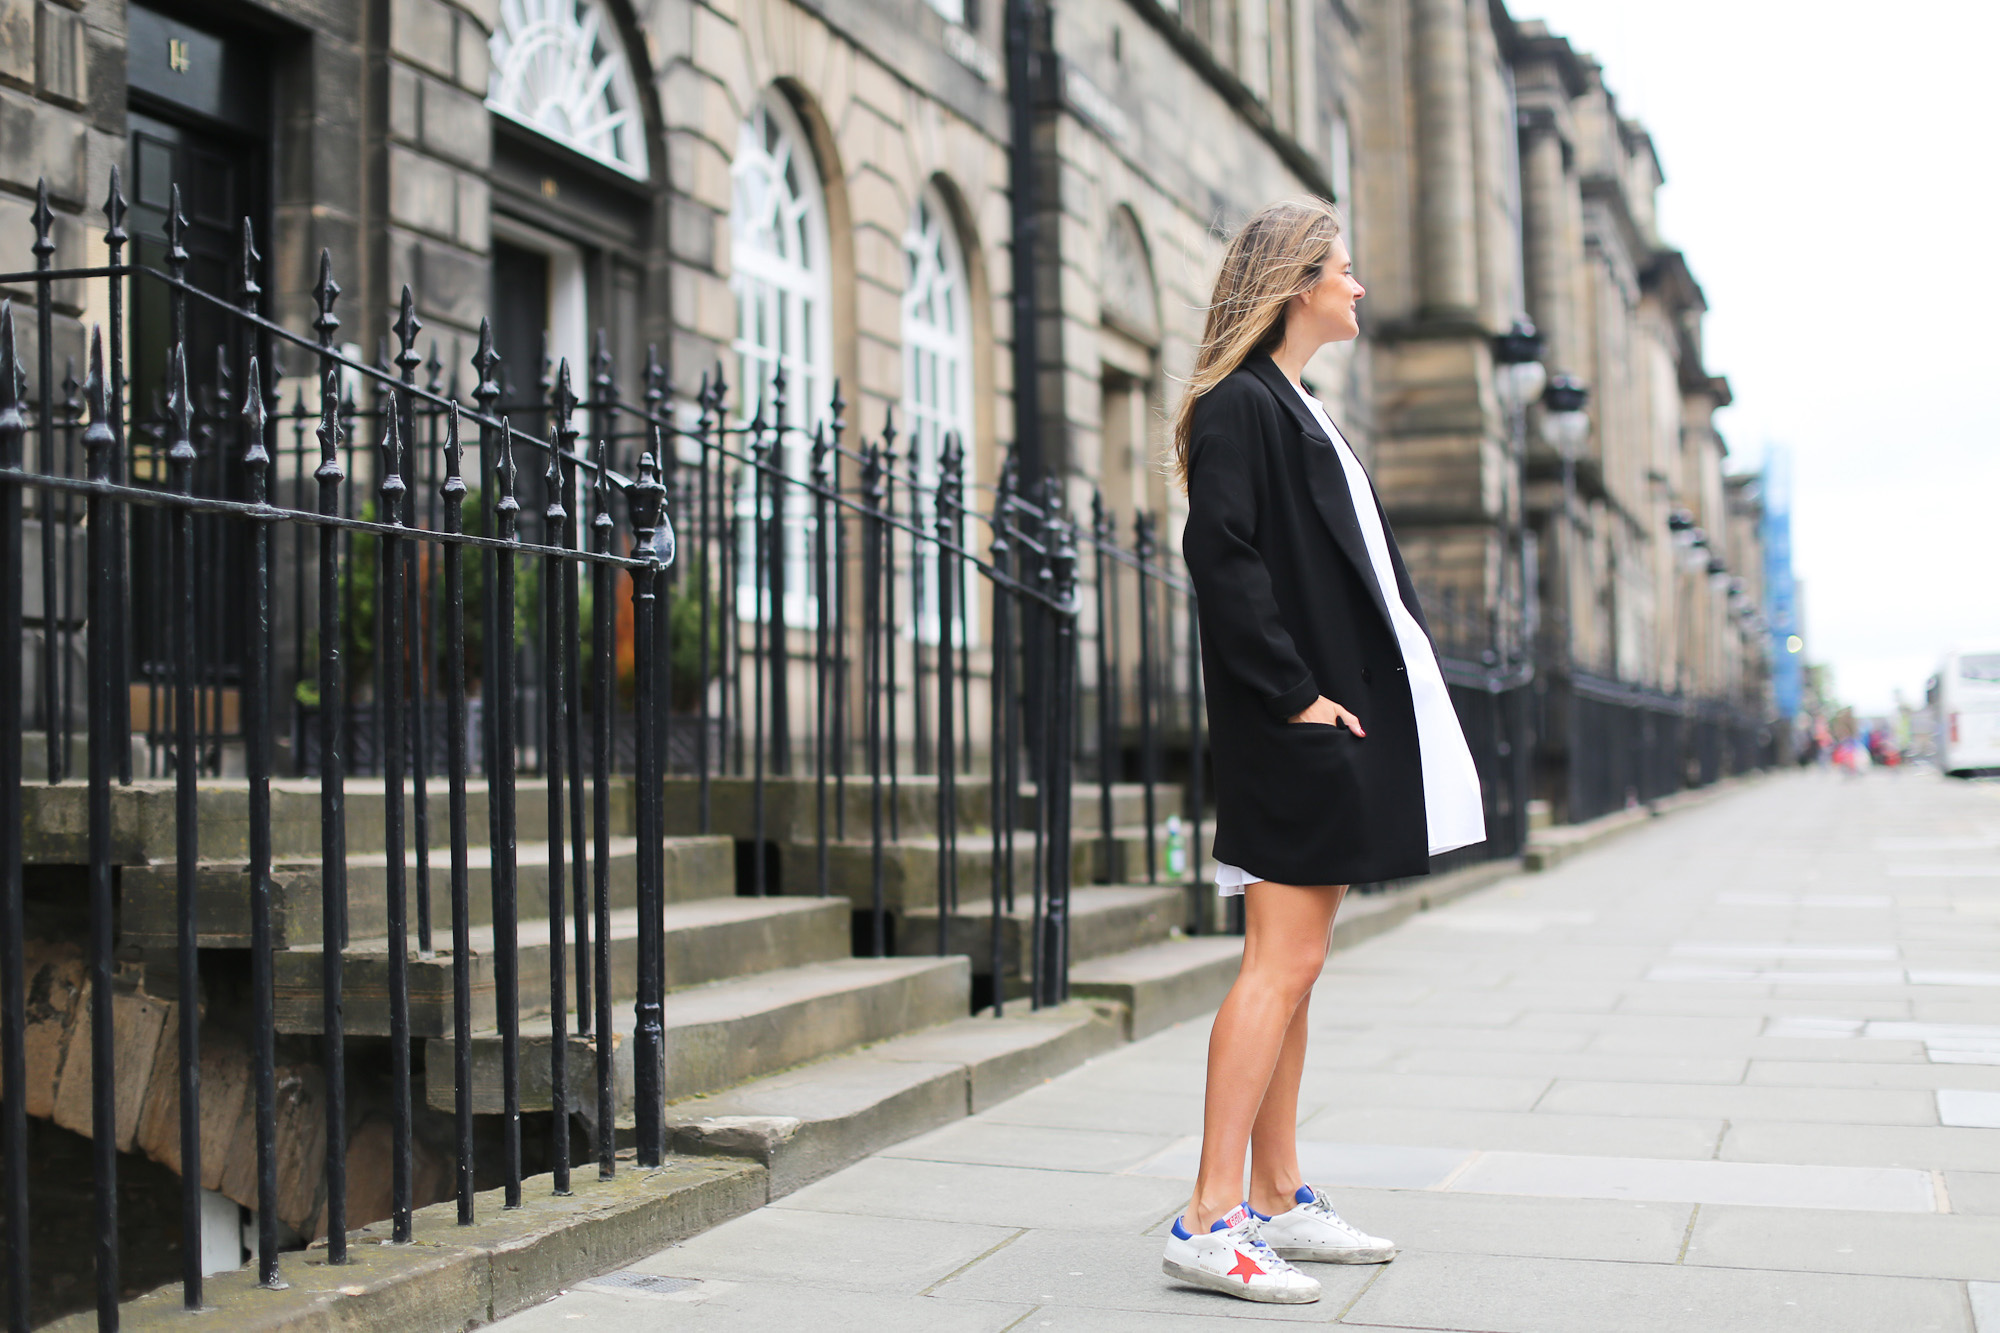 Clochet_streetstyle_zara_littlewhitedress_goldengoosedeluxesneakers_edinburgh-2